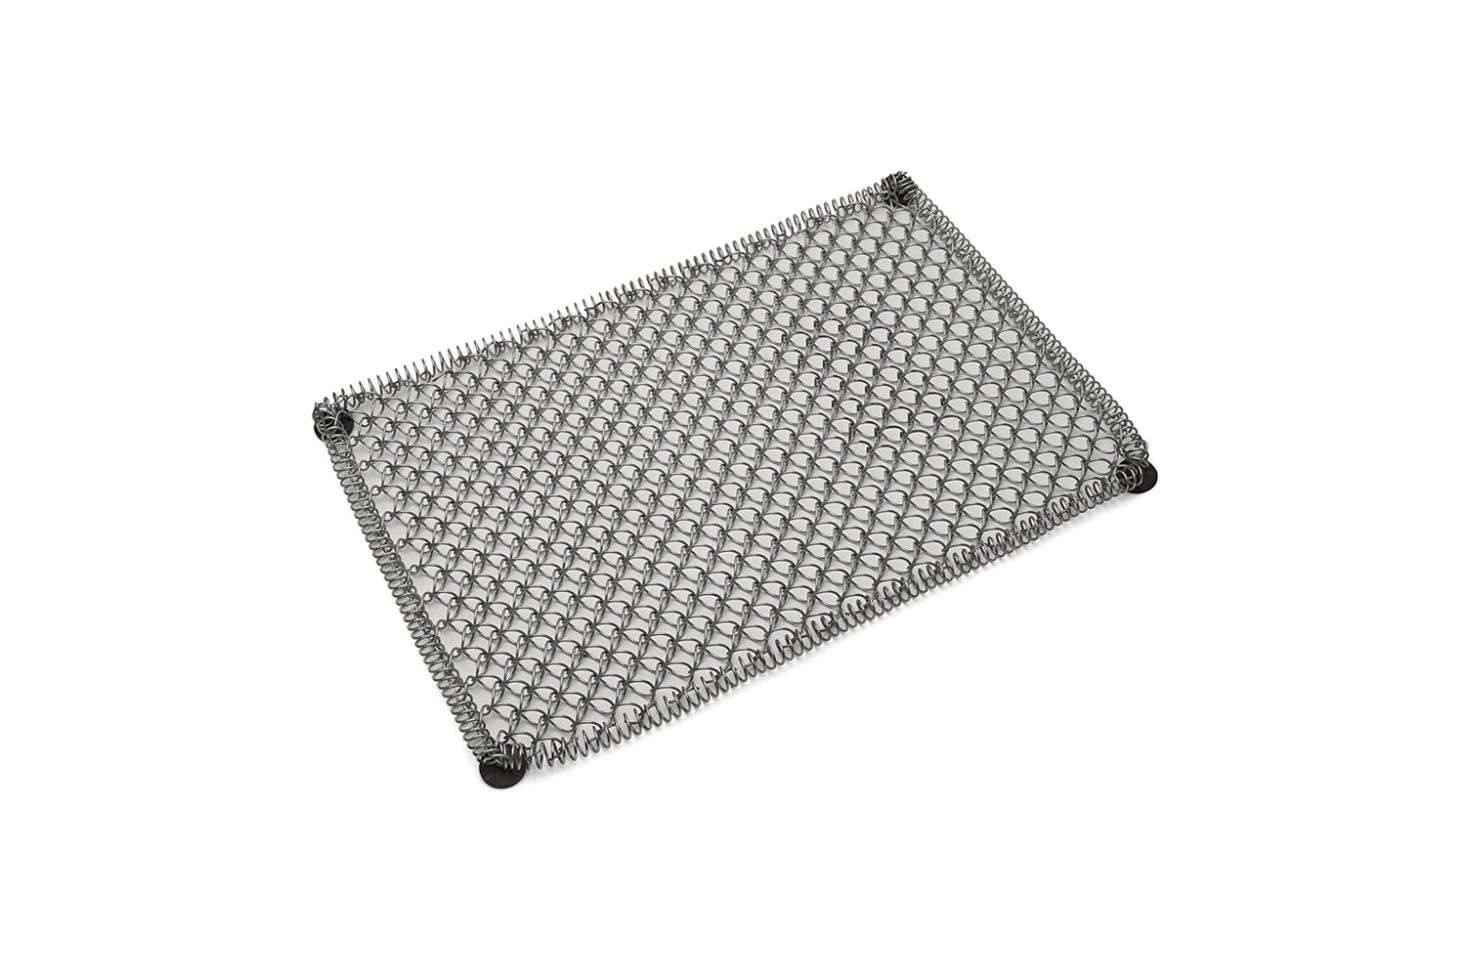 The Galvanized Coil-Steel Mud Mat starts at $.95 at Garret Wade.